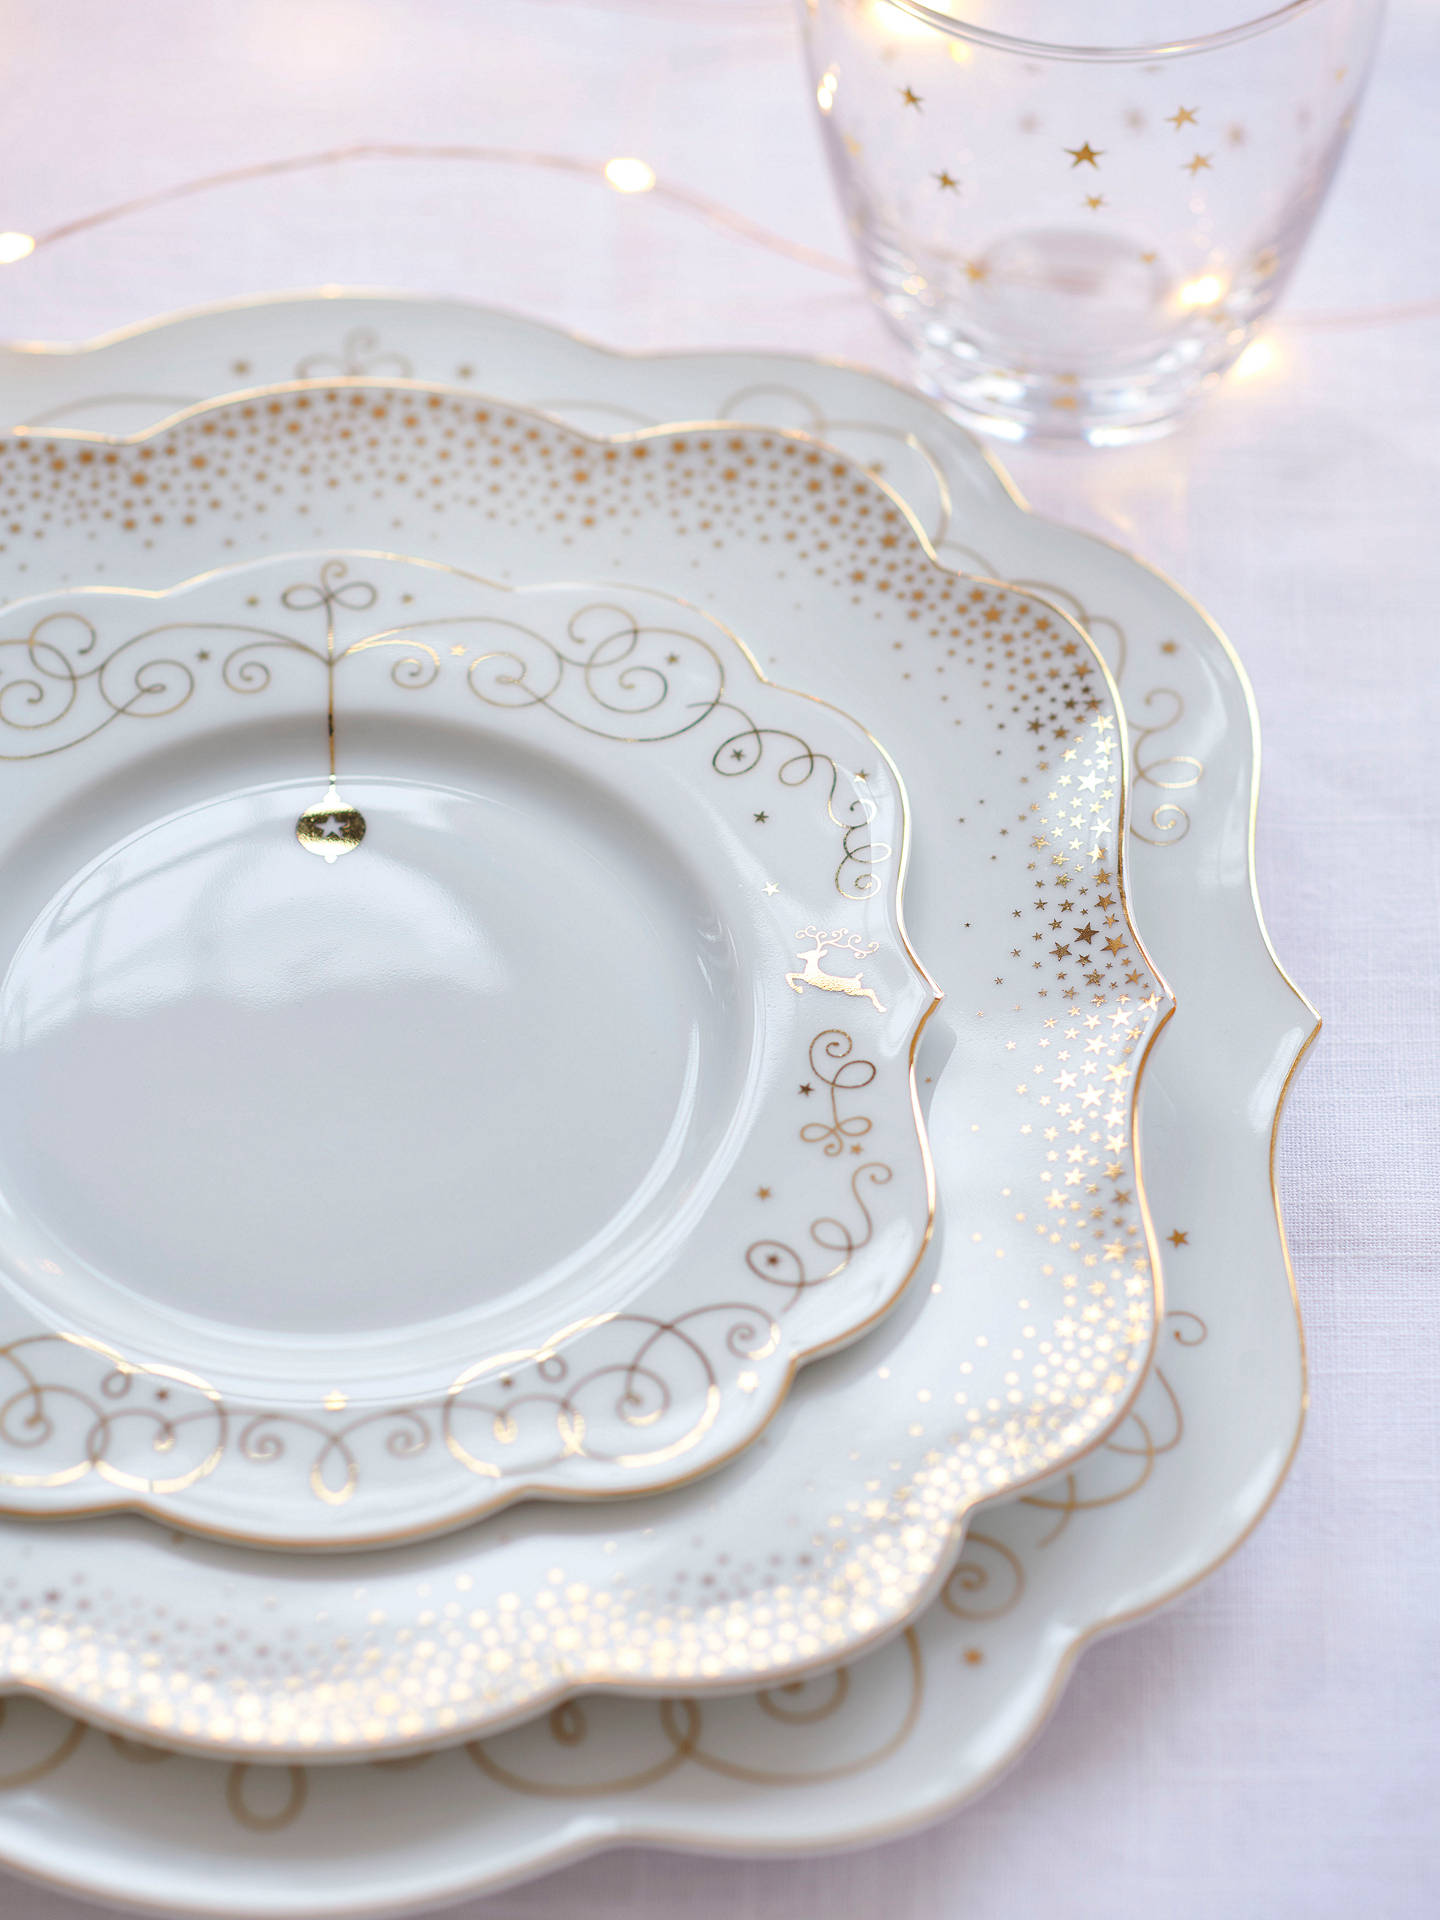 BuyPiP Studio Royal Christmas Plate, White/Gold, 17cm Online at johnlewis.com